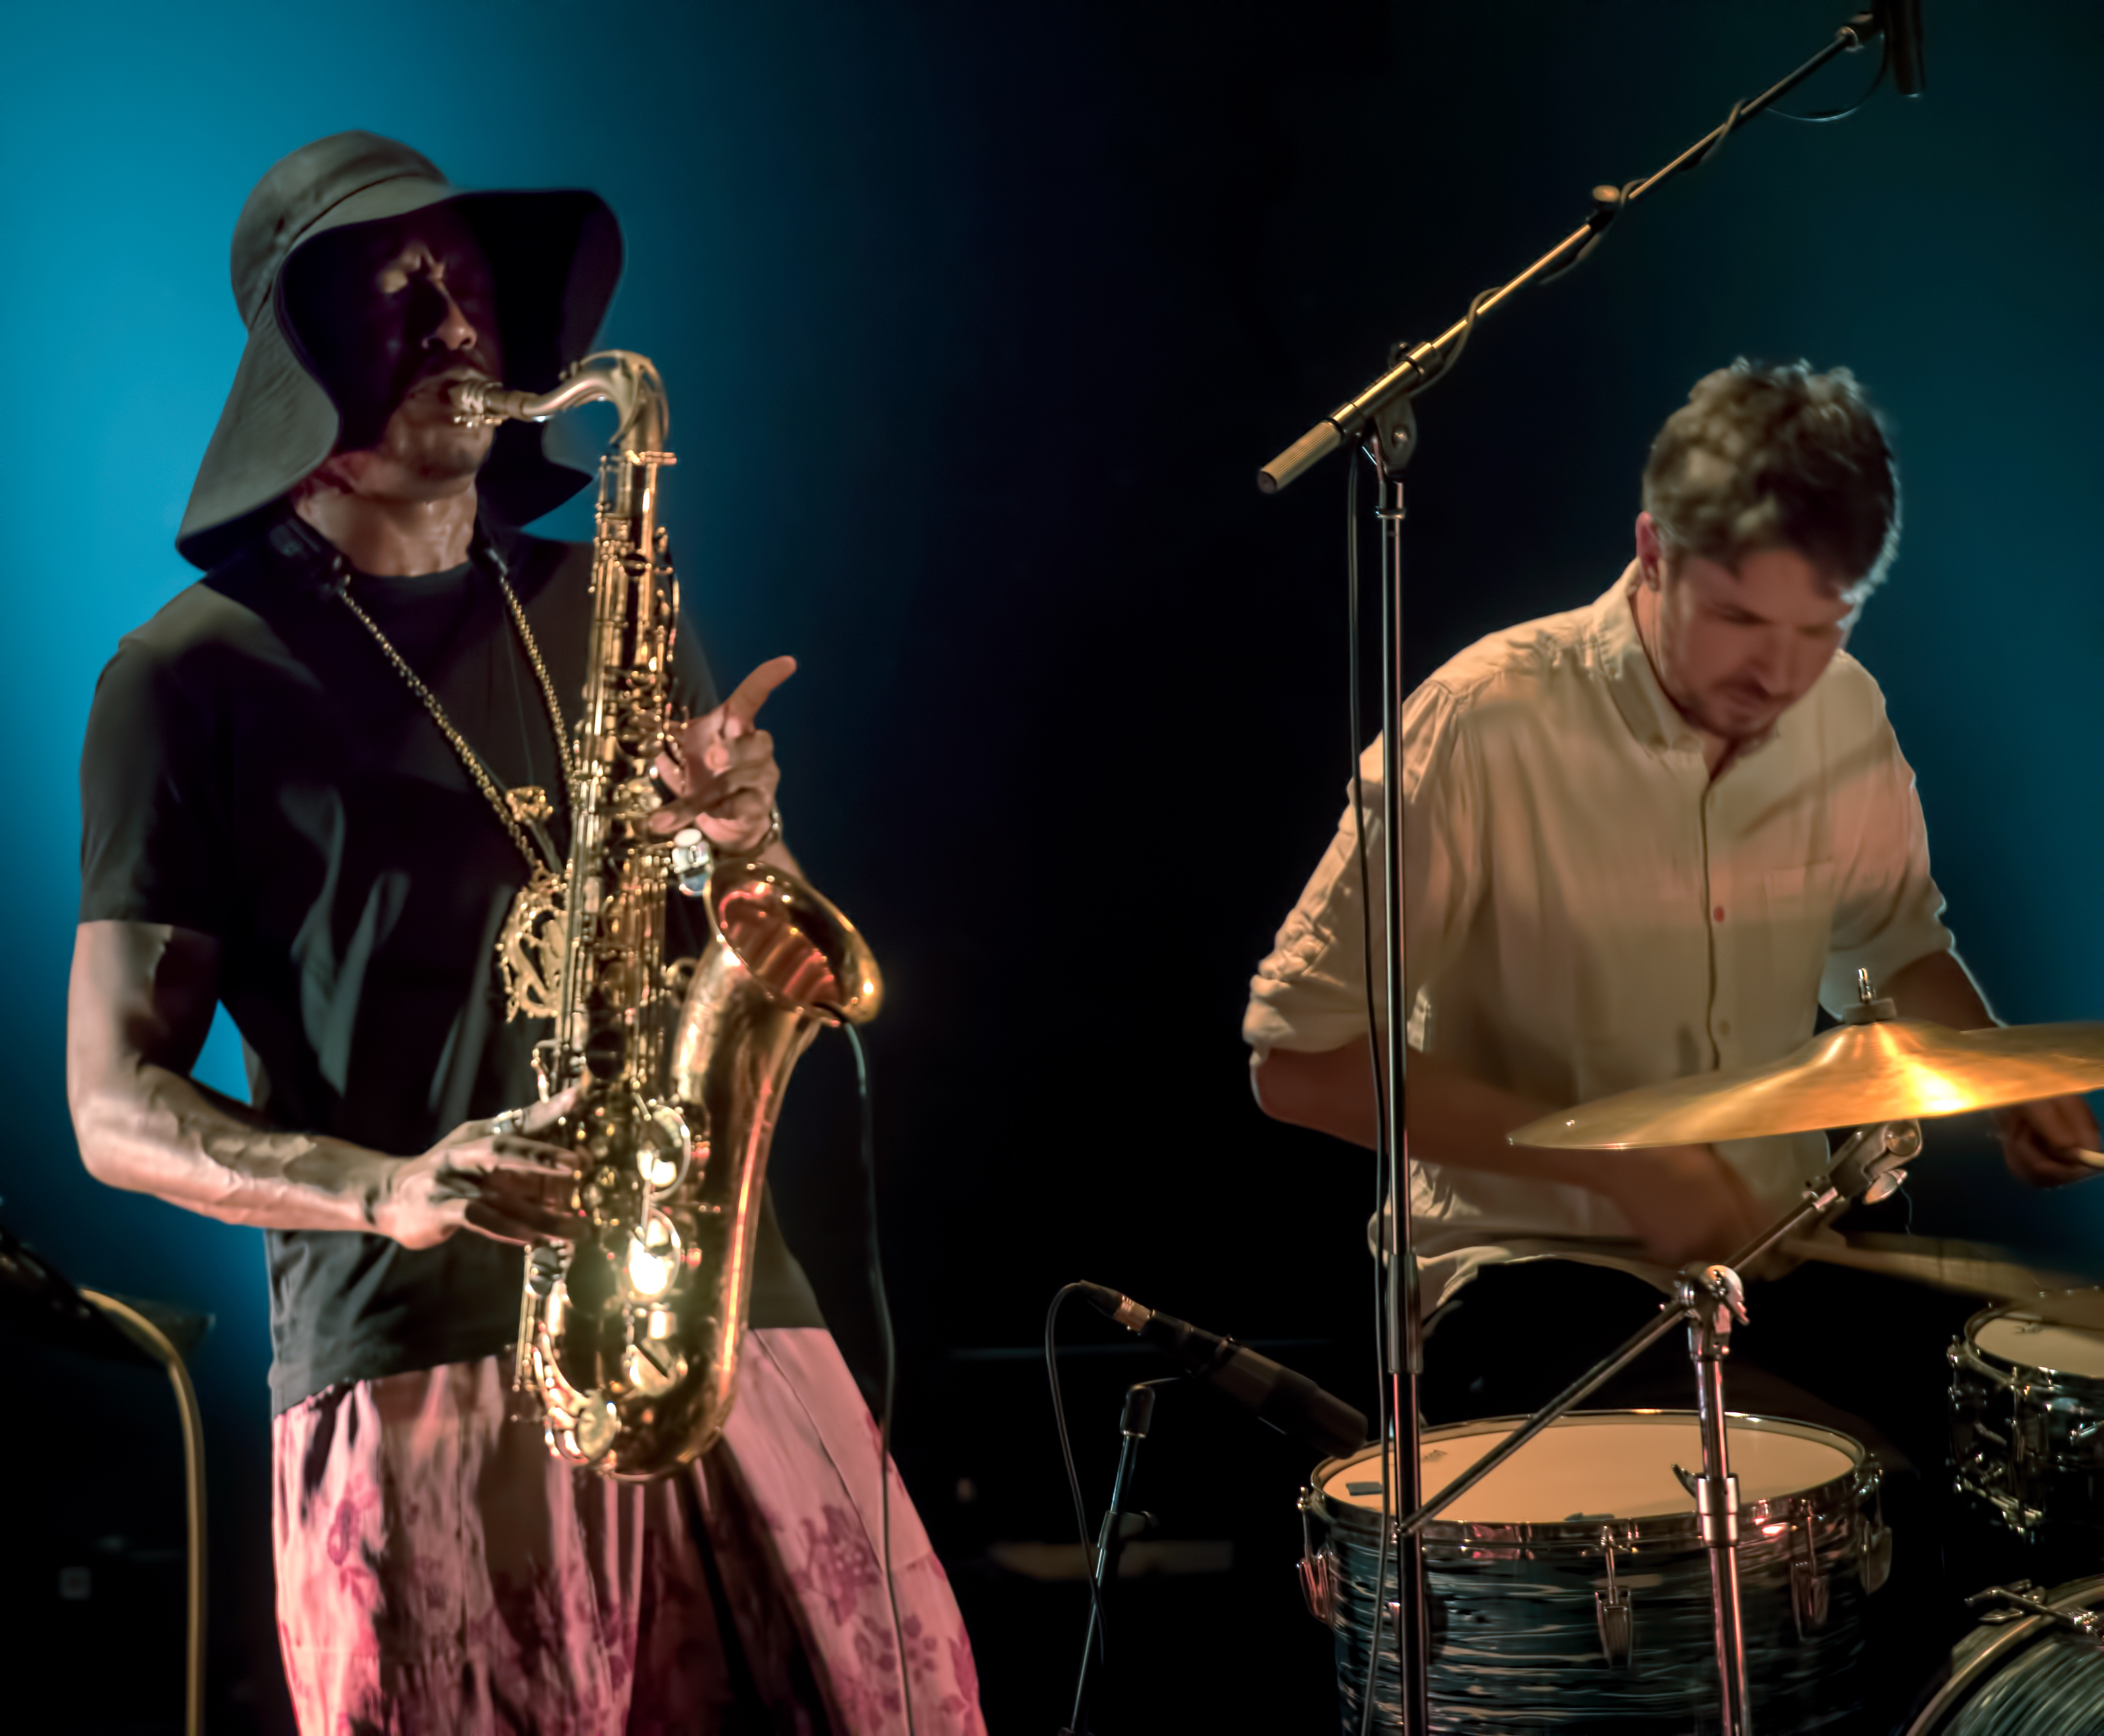 Shabaka Hutchings and Tom Skinner with the Sons of Kemet at The Montreal International Jazz Festival 2018